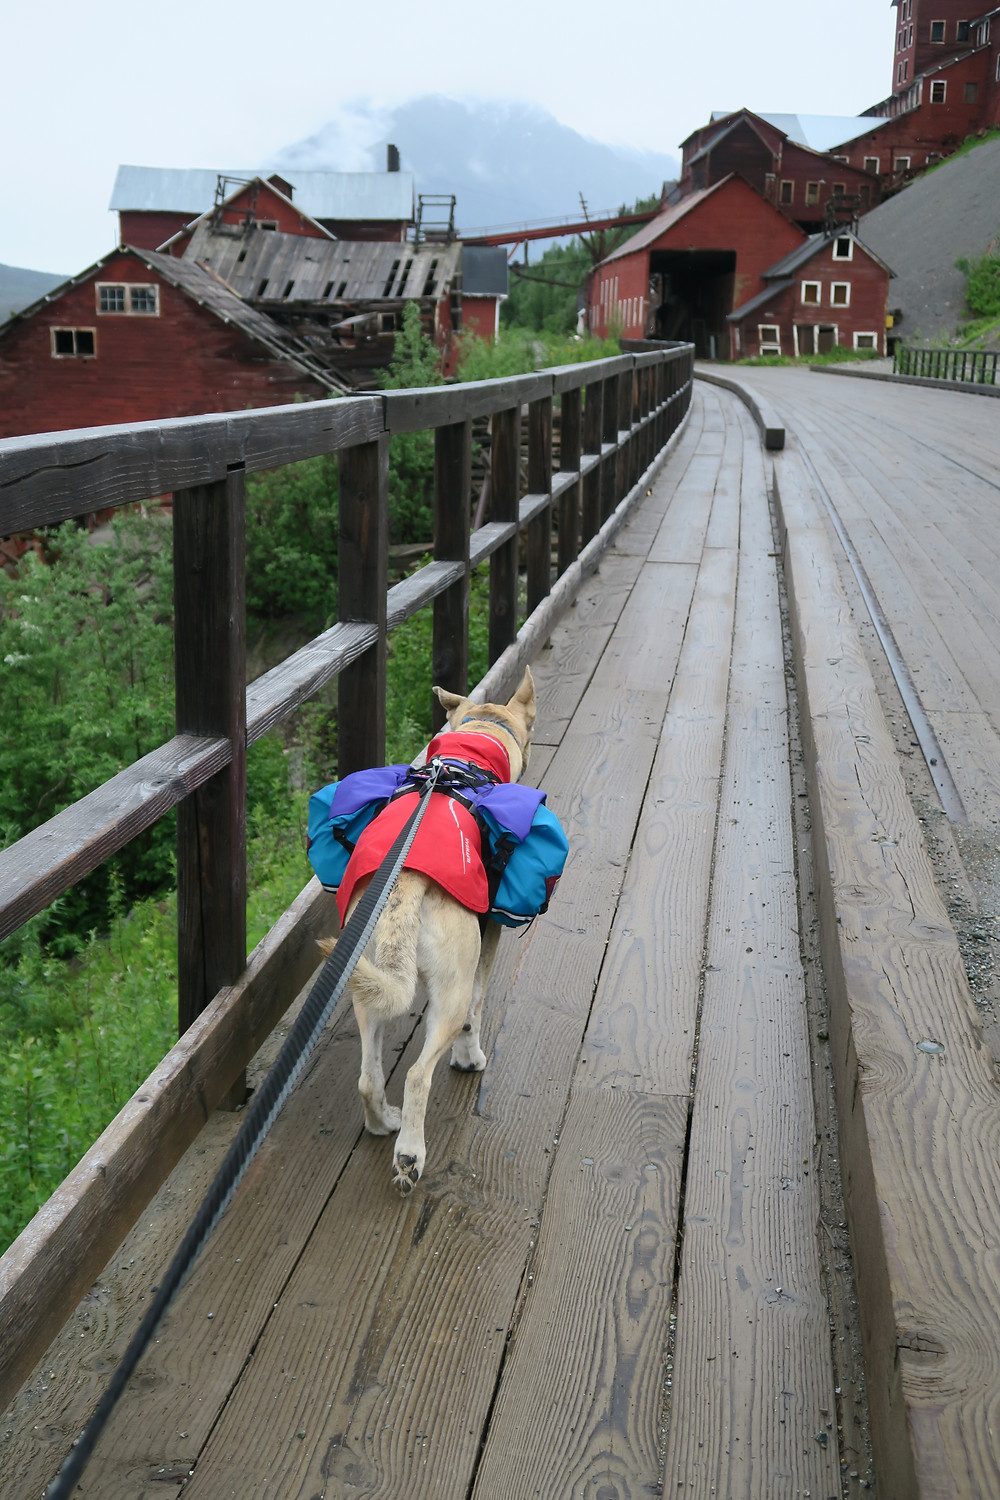 A dog wearing a red coat and blue and purple pack walks over a wooden bridge to an old mining town with red buildings.